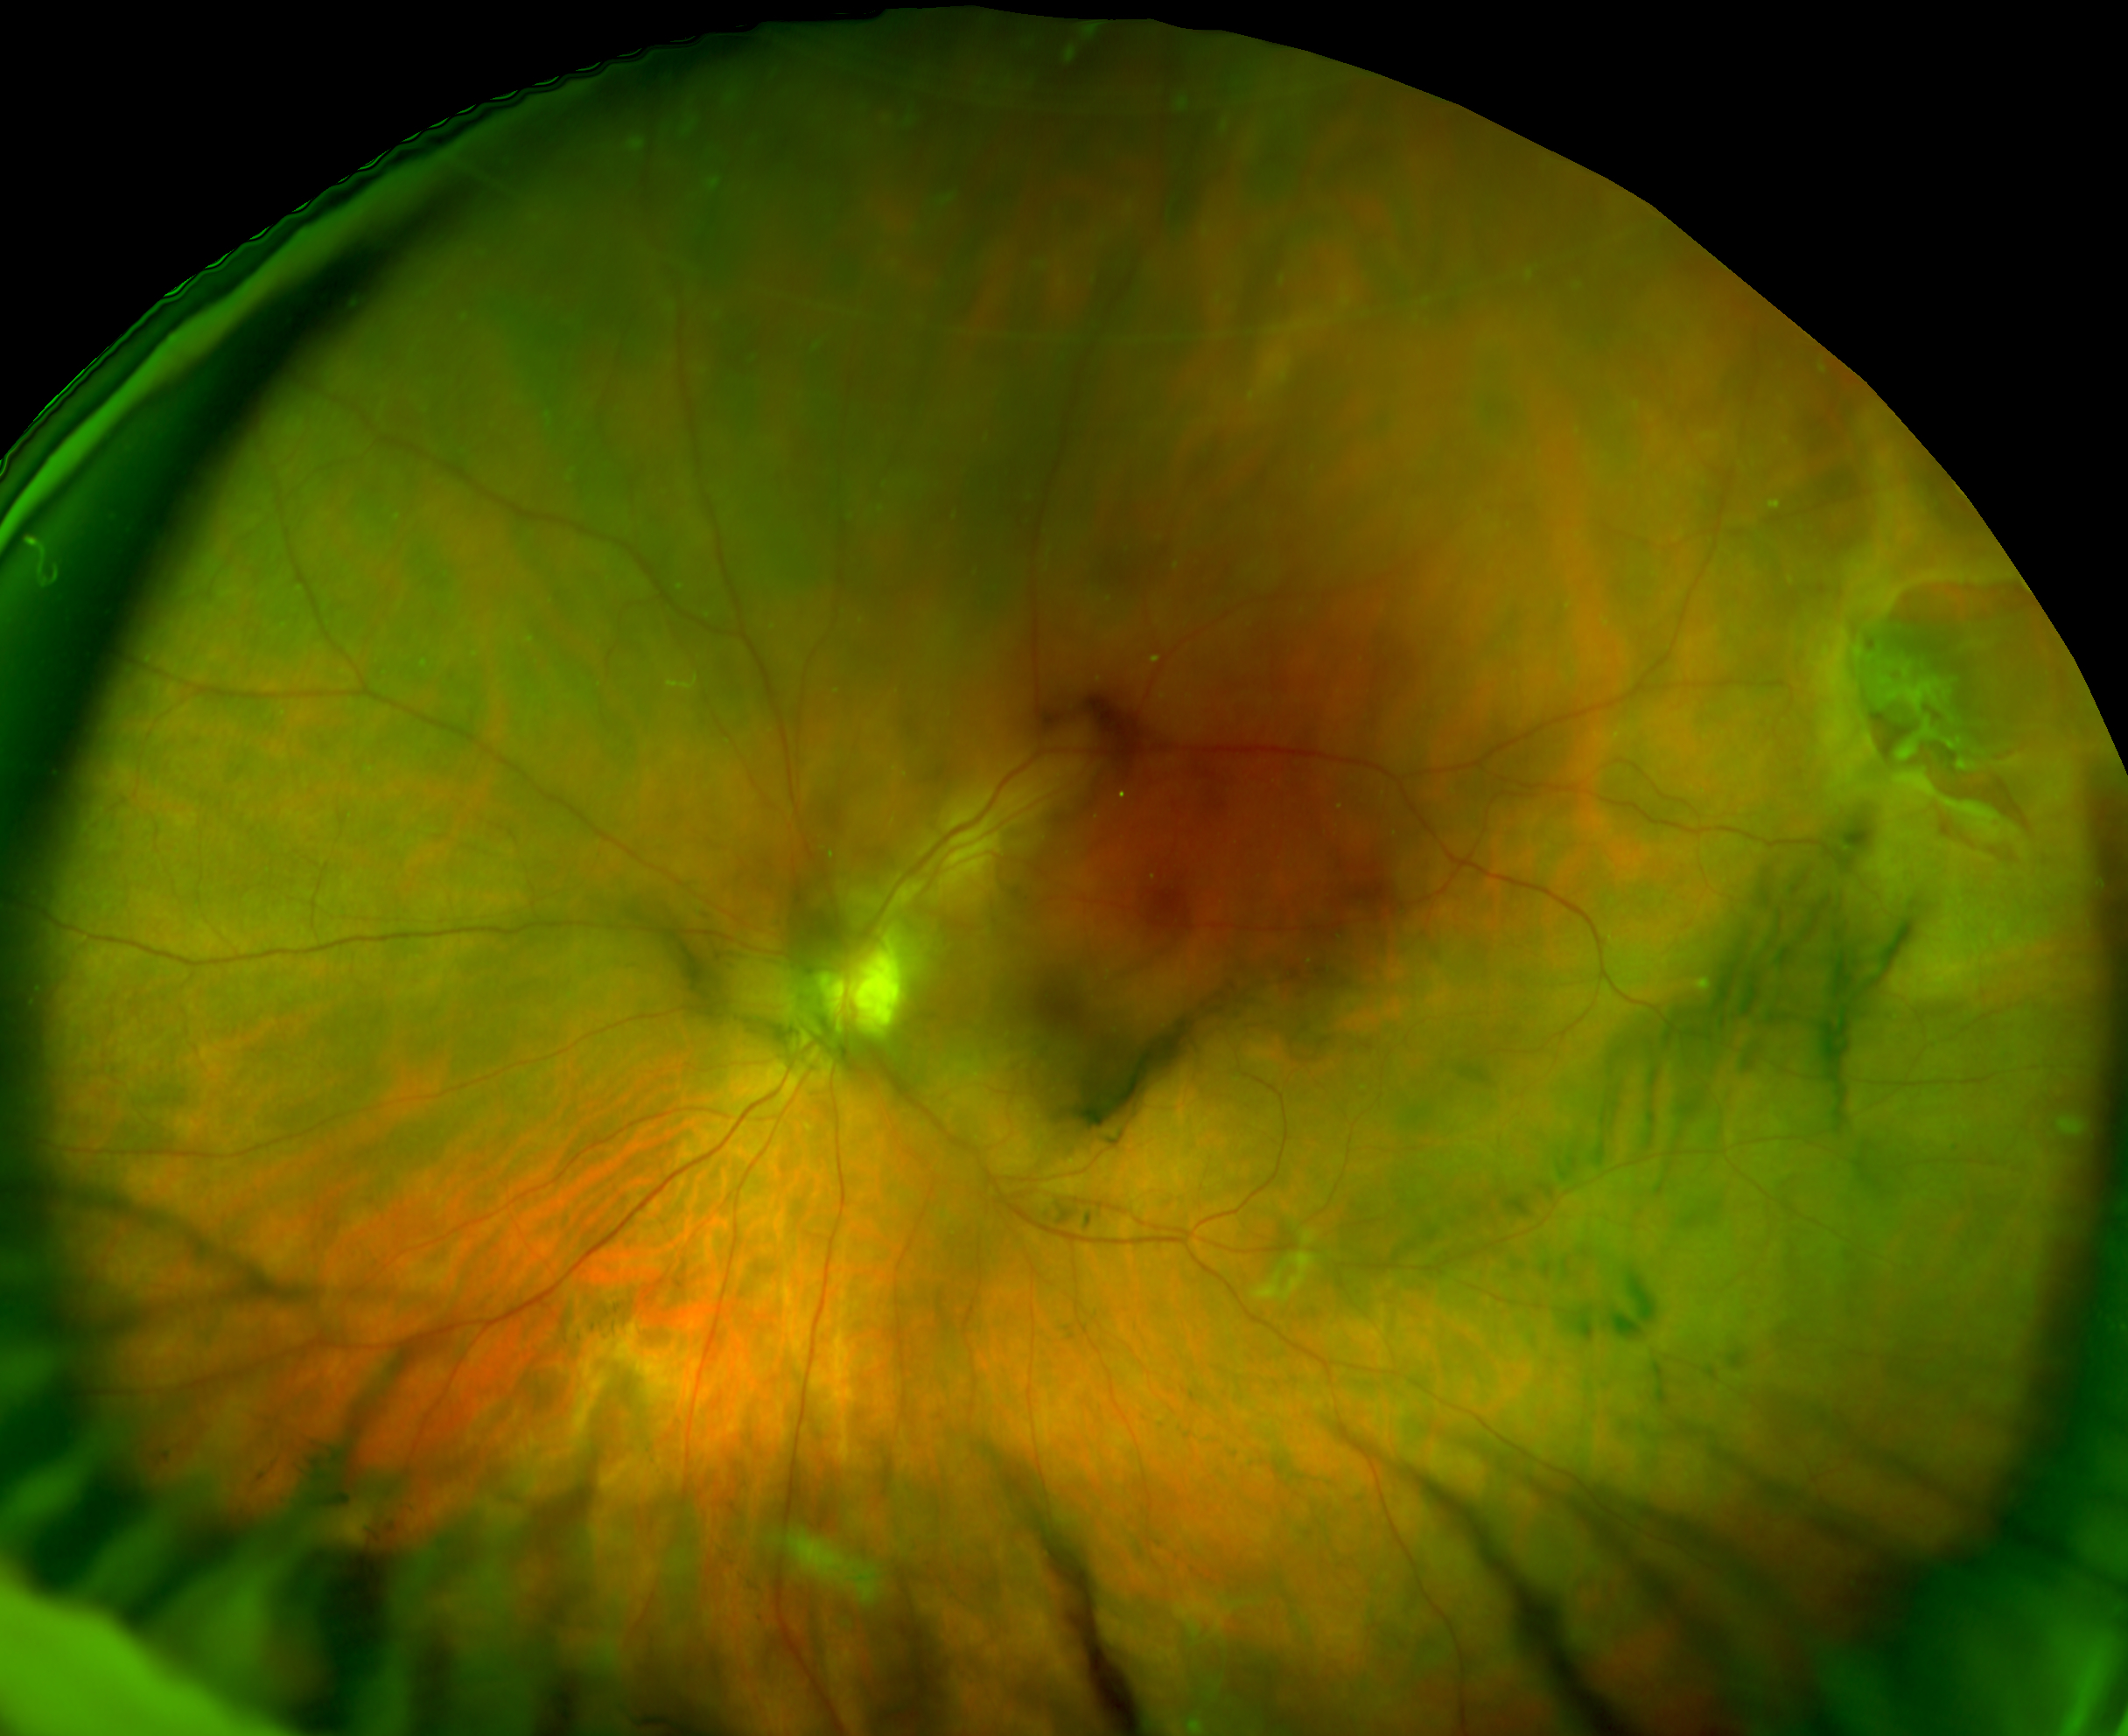 retinal holes and tears recognizing pathology optos